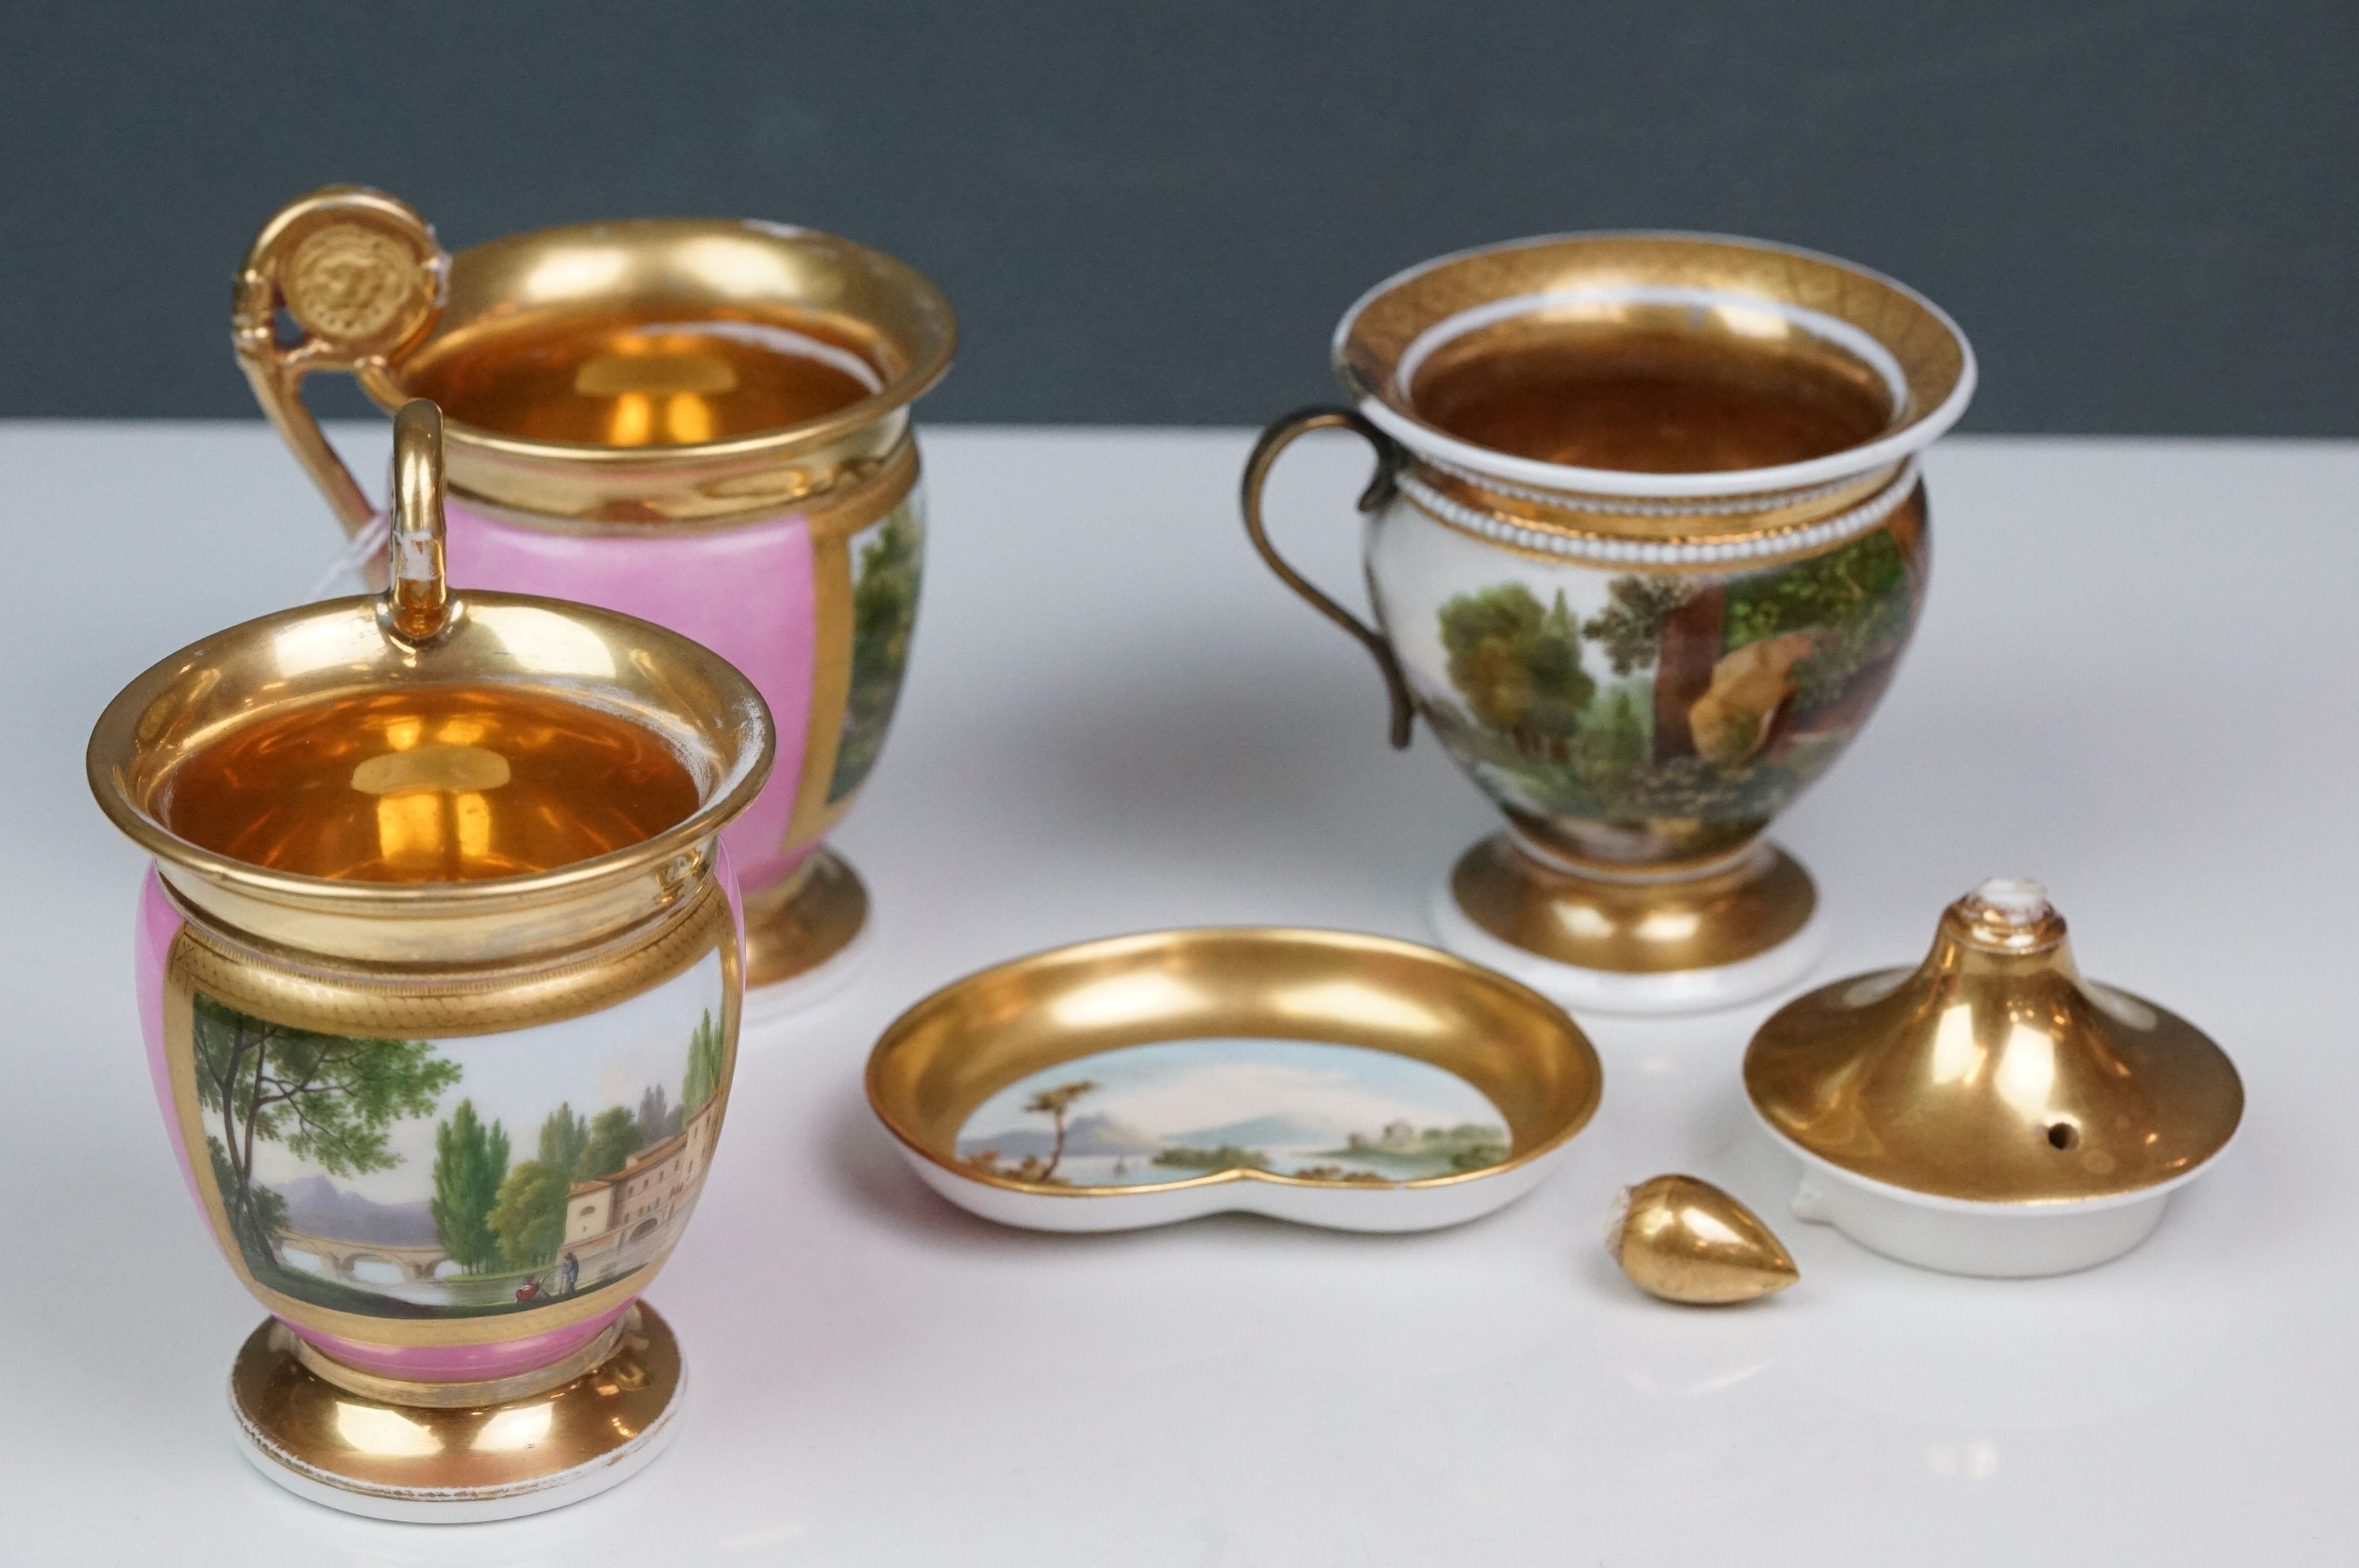 Pair of hand painted Dresden cups, each depicting a different scene: castle and lake scene with